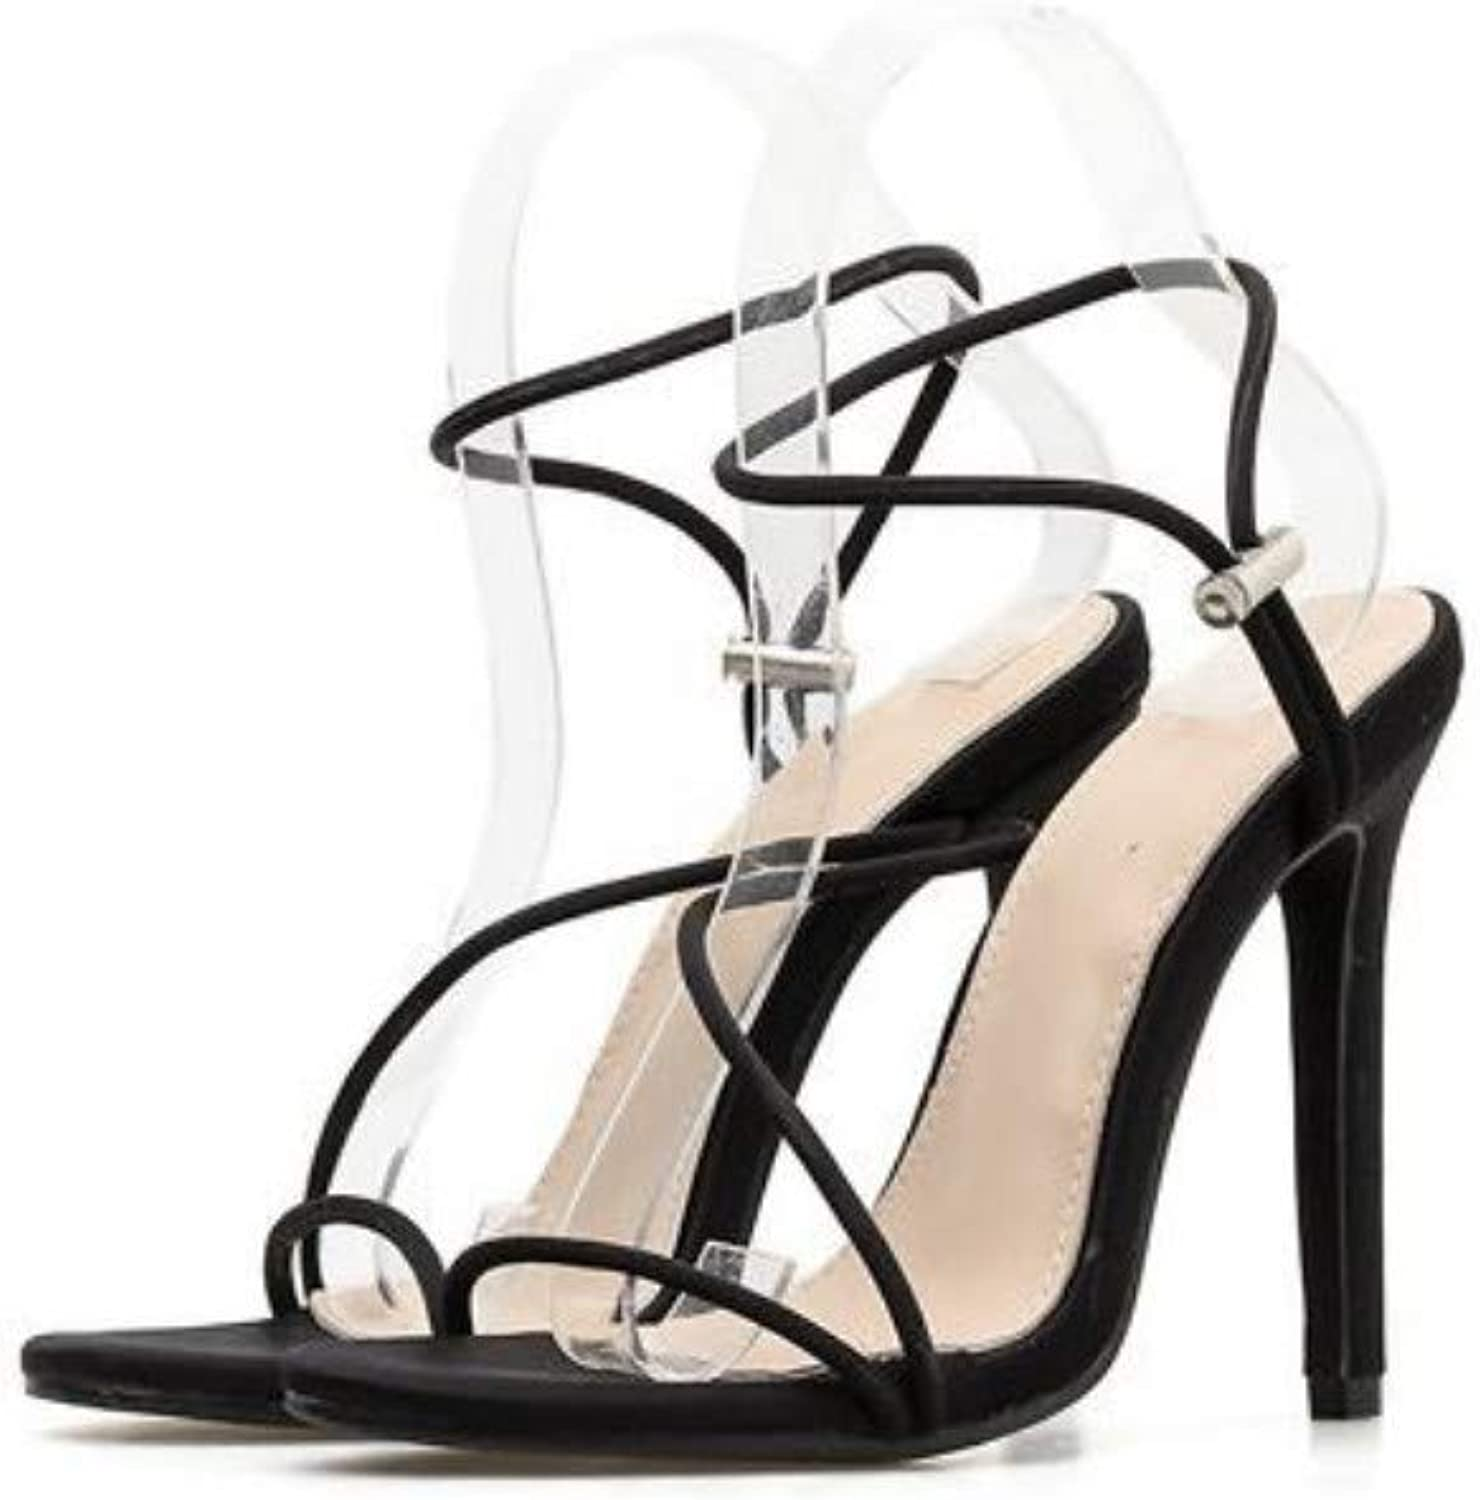 JQfashion Women's High-Heeled shoes Candy color Pointed High-Heeled Sandals with Sexy Ribbons